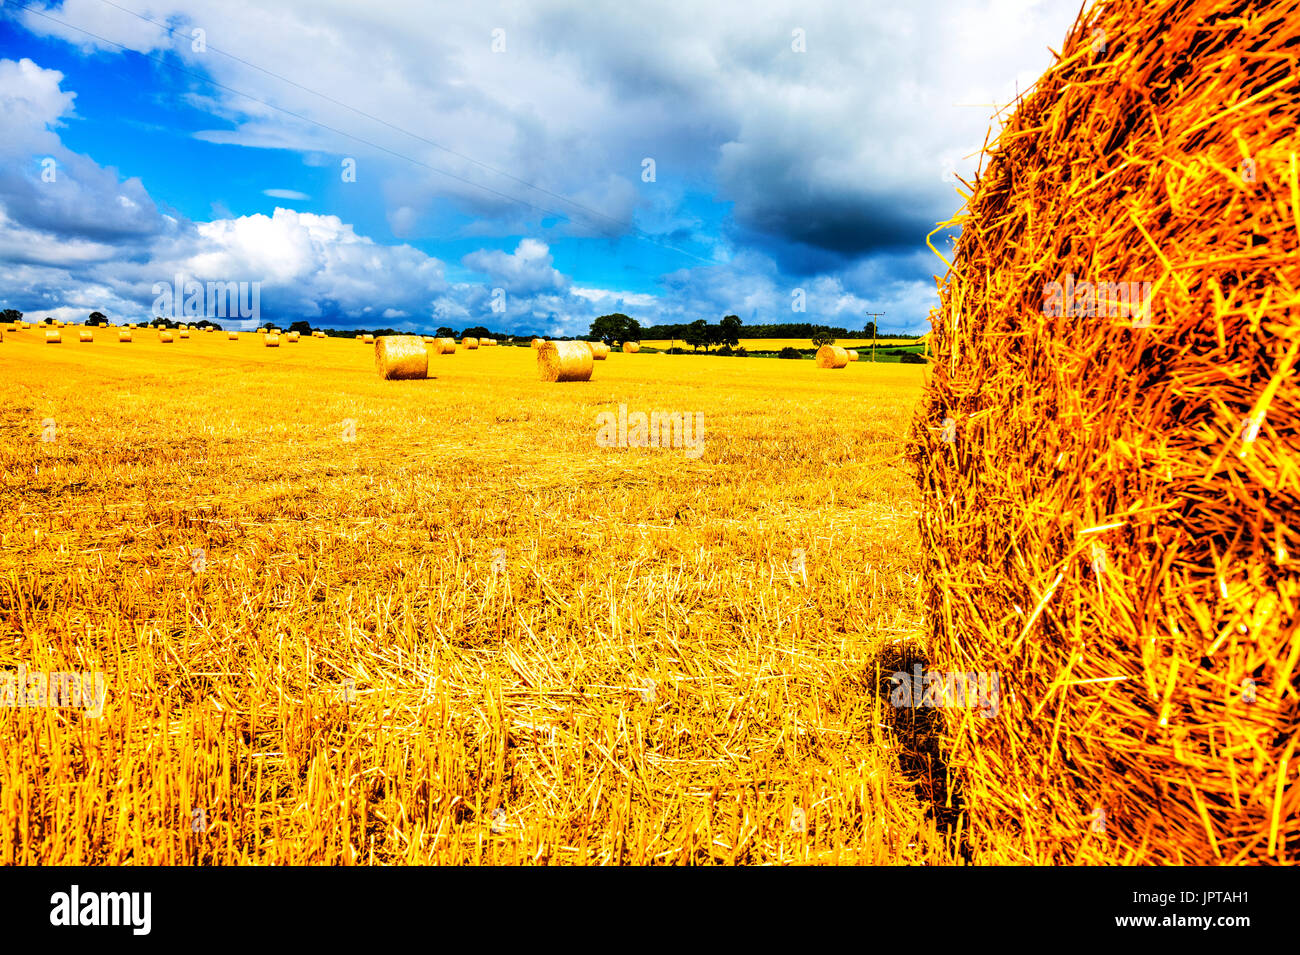 Straw bales, straw field, wheat field harvested, harvested wheat field, round straw bales, harvested straw, agriculture UK, UK wheat field, straw, - Stock Image